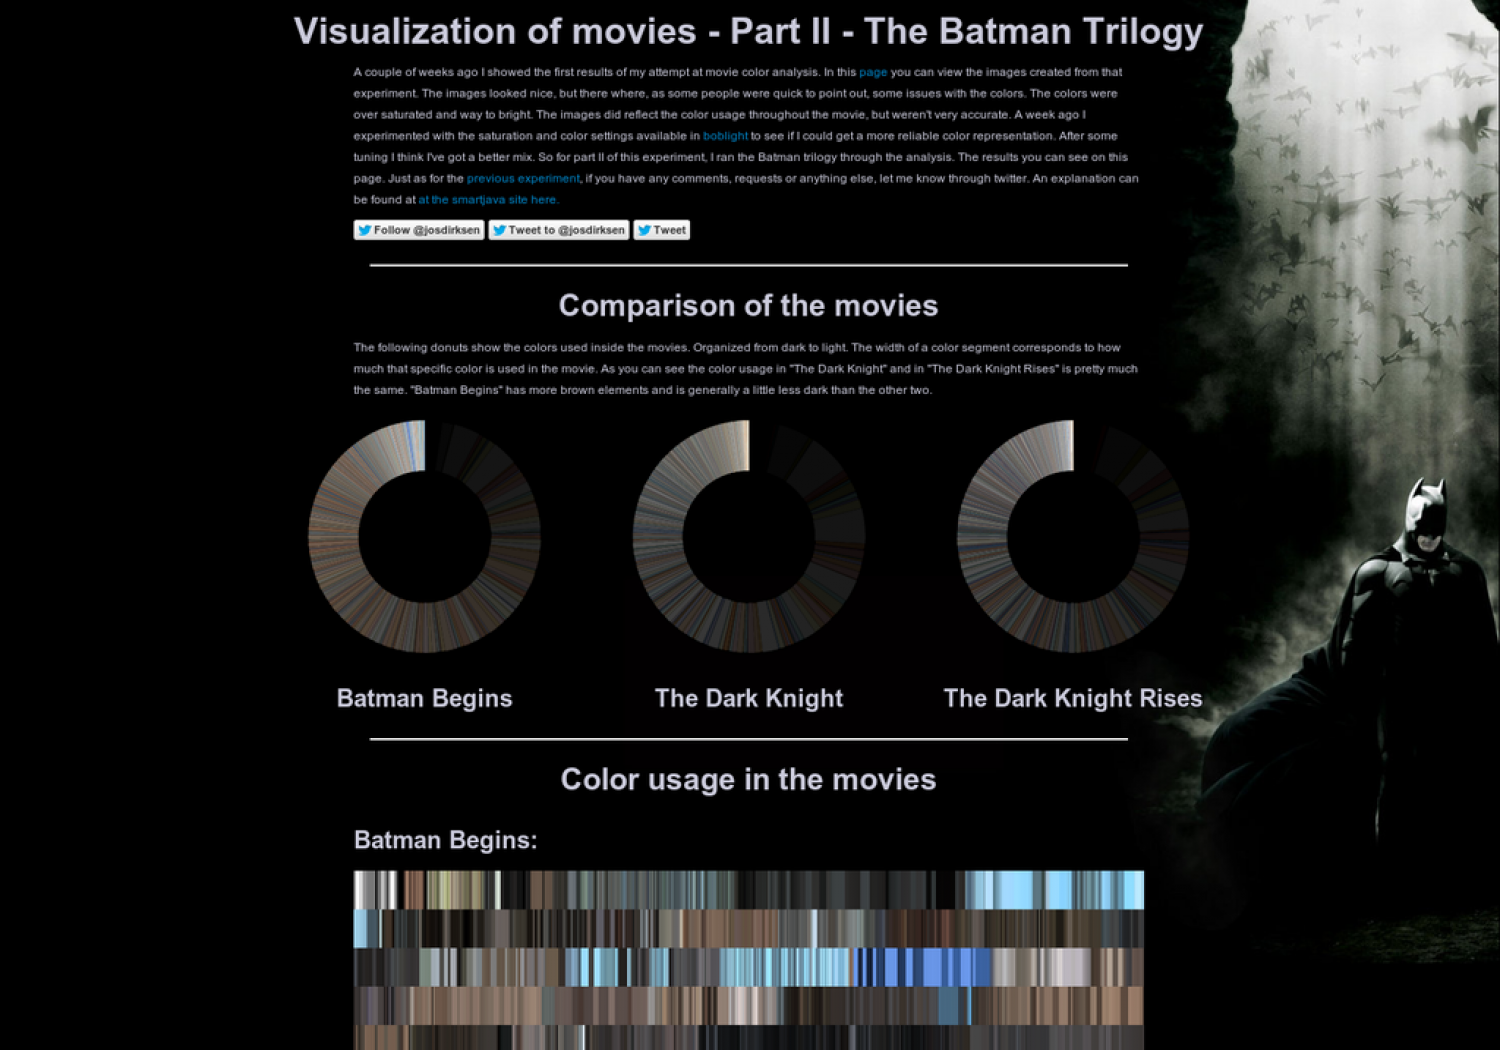 Visualization of movies - Part II - The Batman Trilogy Infographic